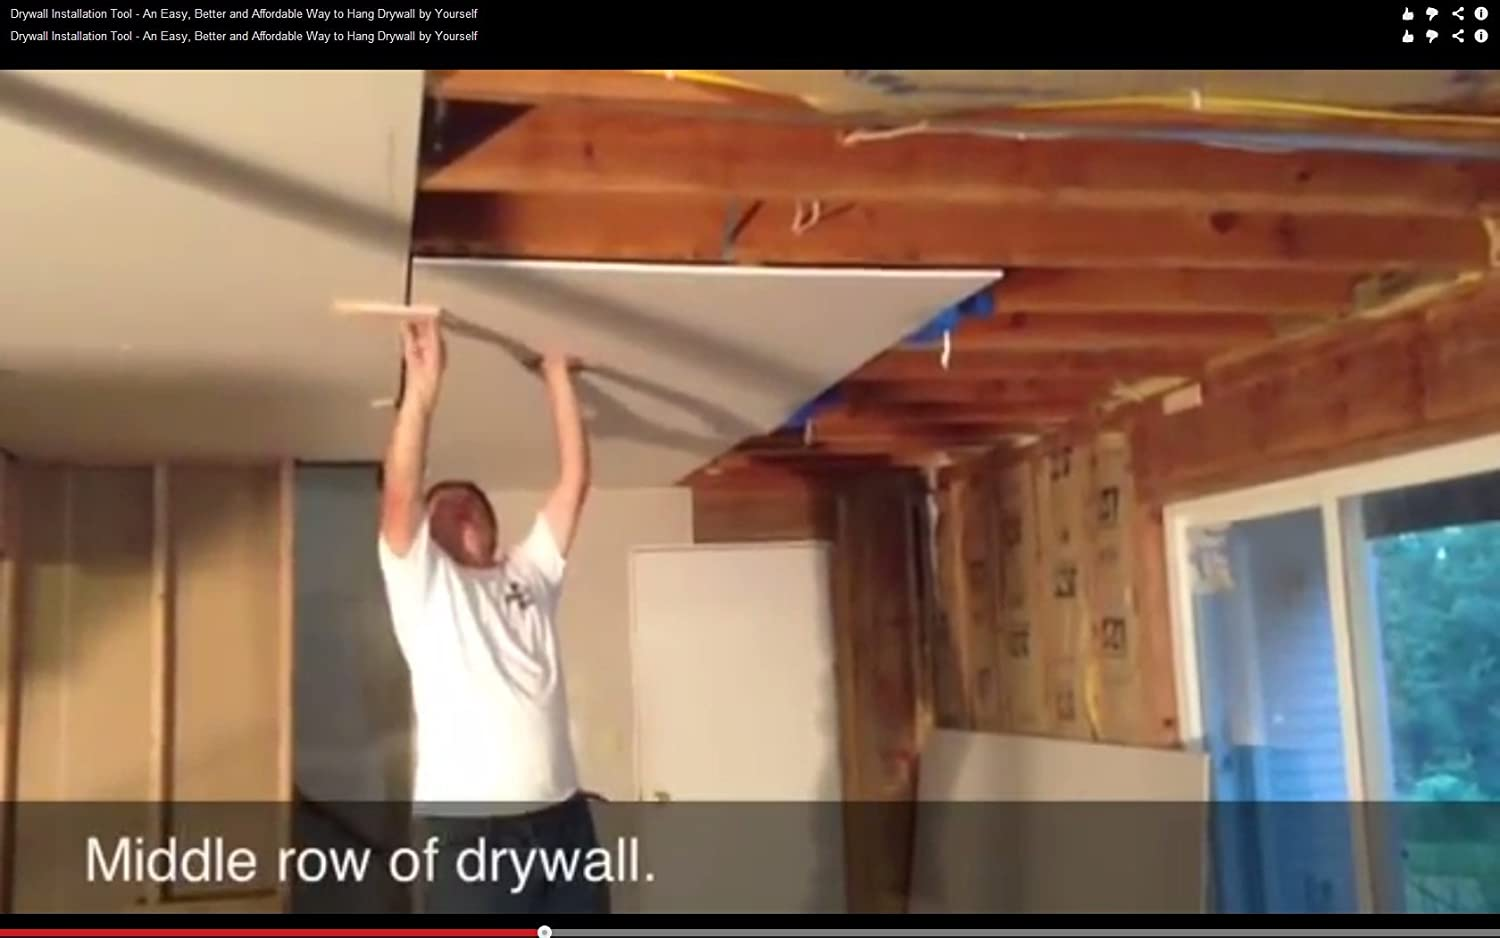 How to hang drywall on walls - How To Hang Drywall On Walls 44